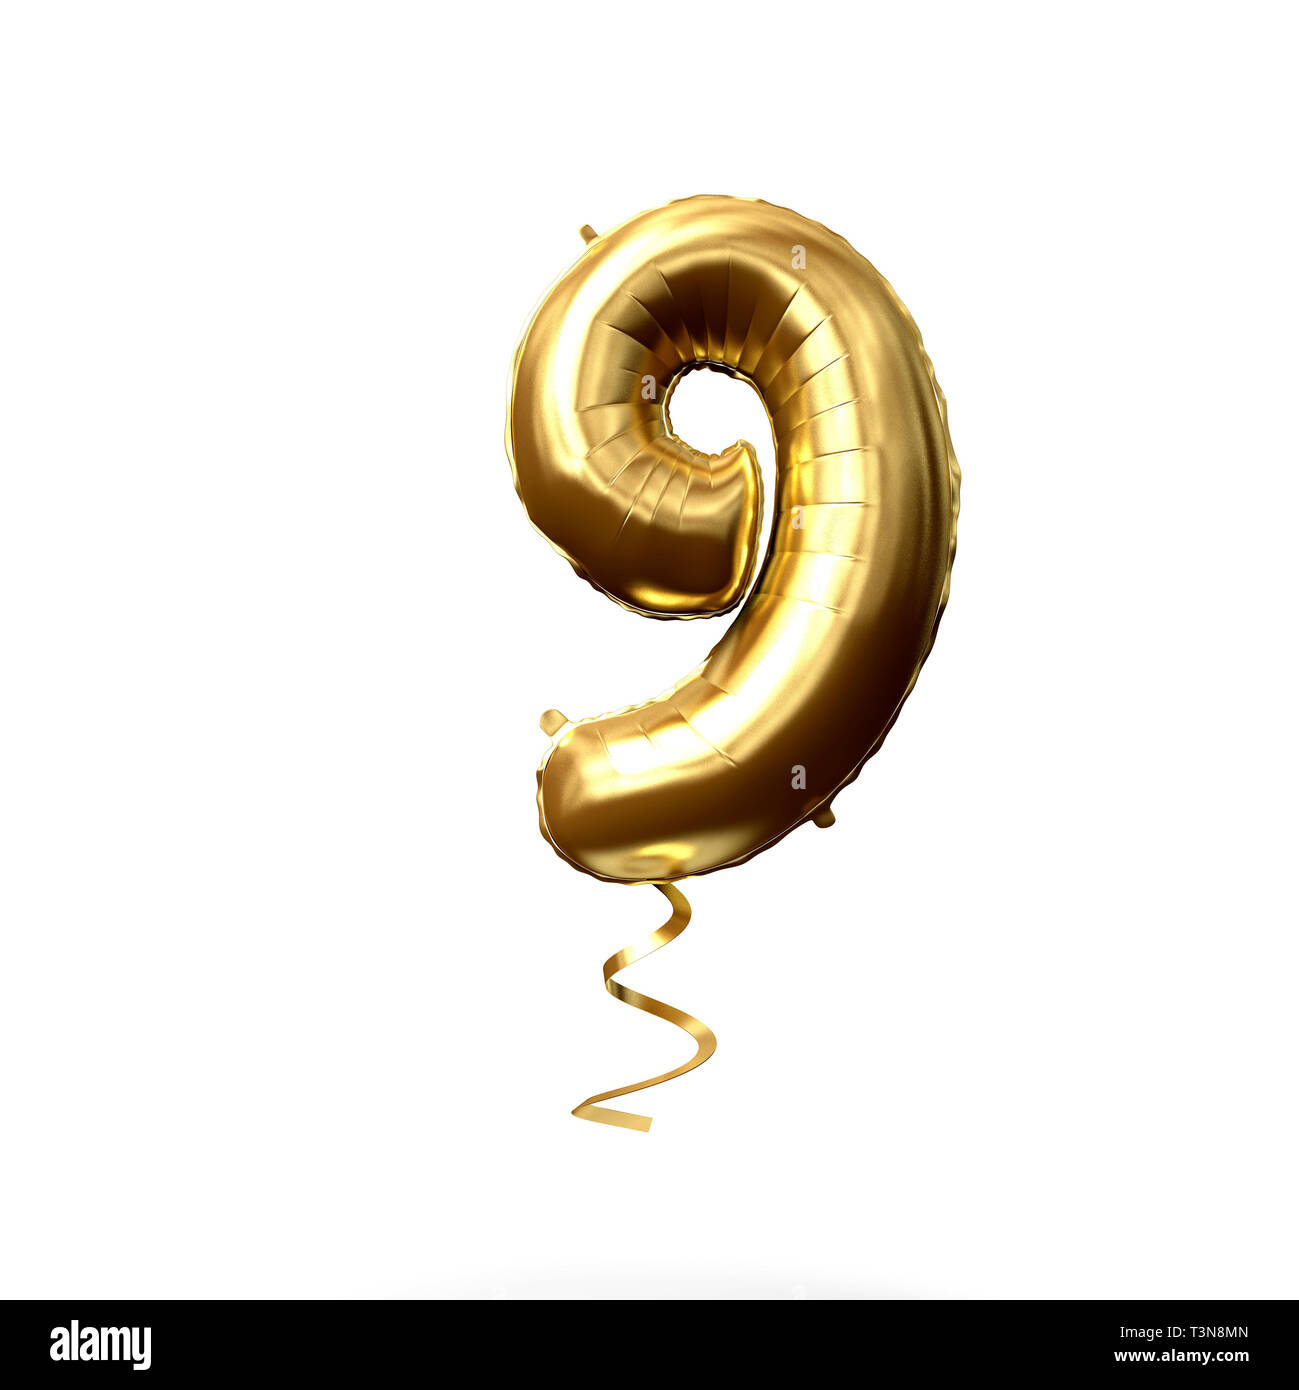 Number 9 gold foil helium balloon isolated on a white background. 3D Render - Stock Image